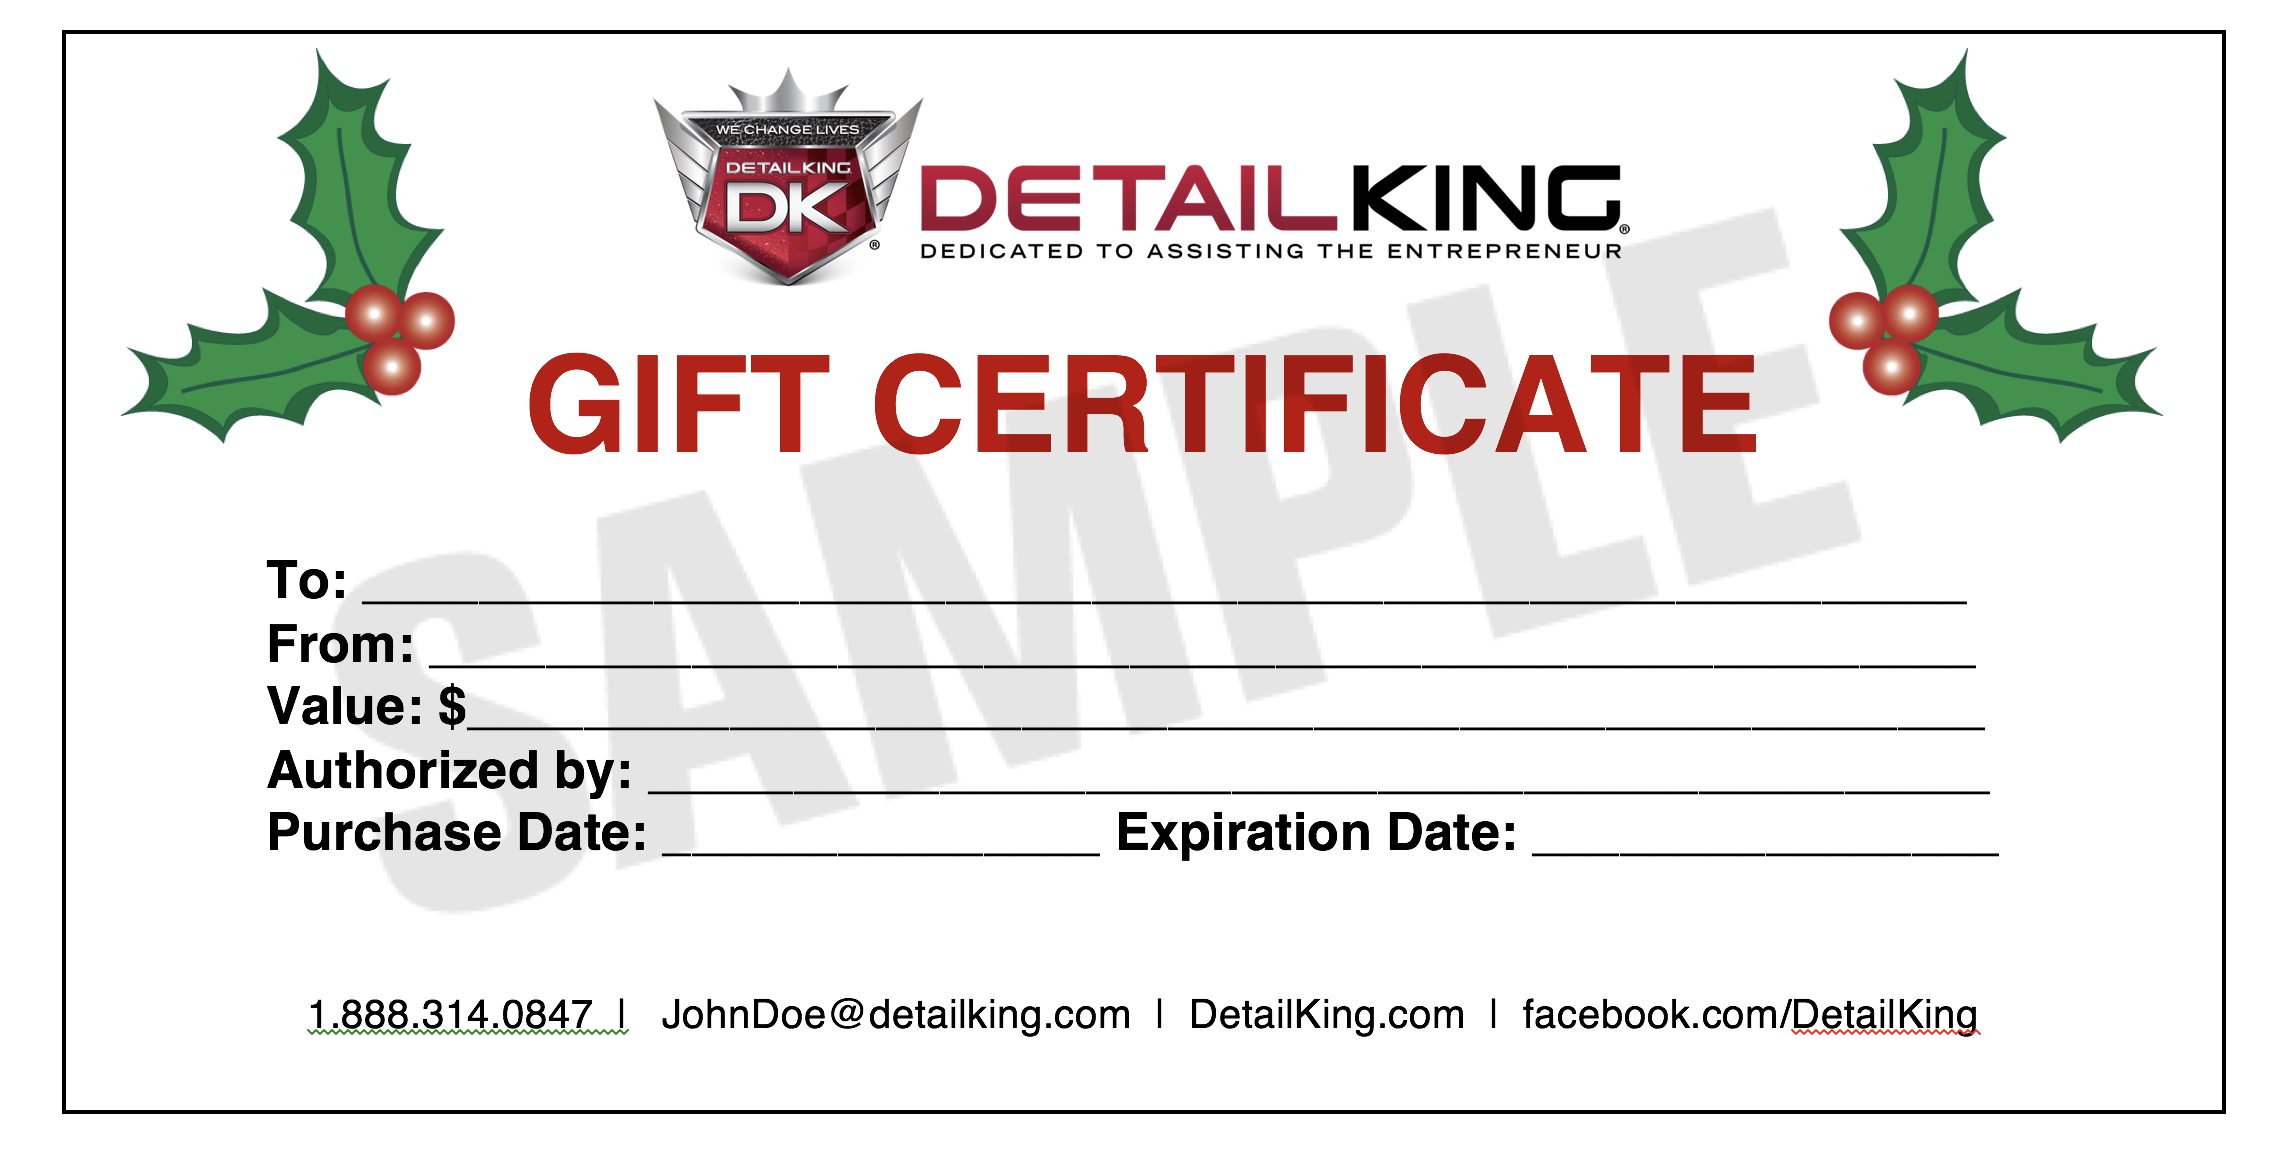 automotive gift certificate template - detail king special offers and promotions auto detailing